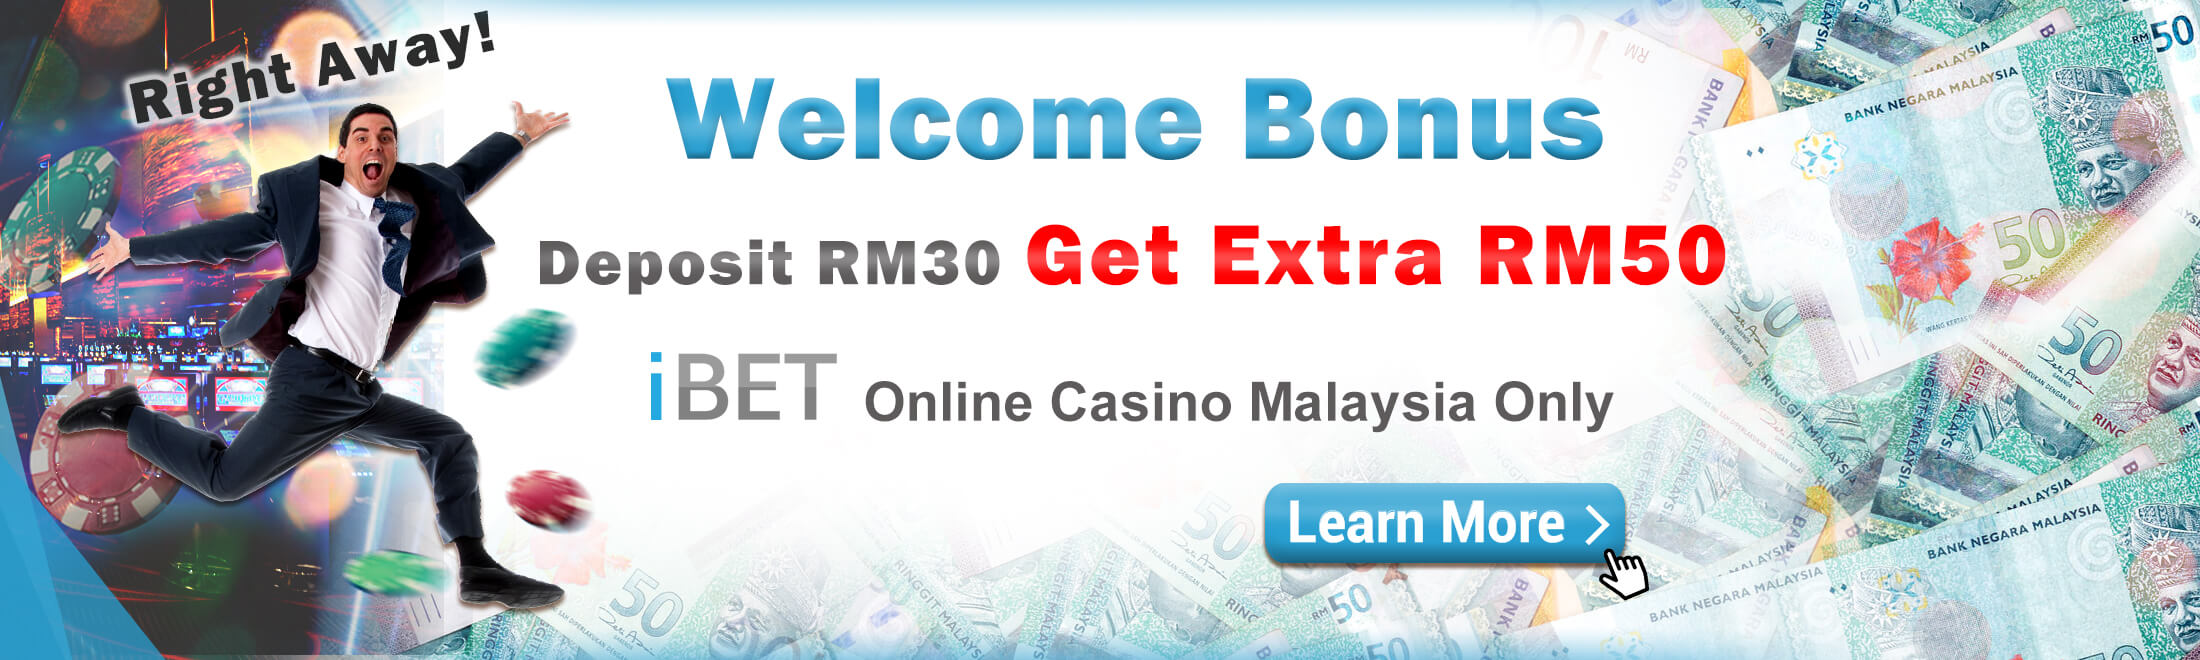 sky3888 Recommend ibet deposit 30 free 50